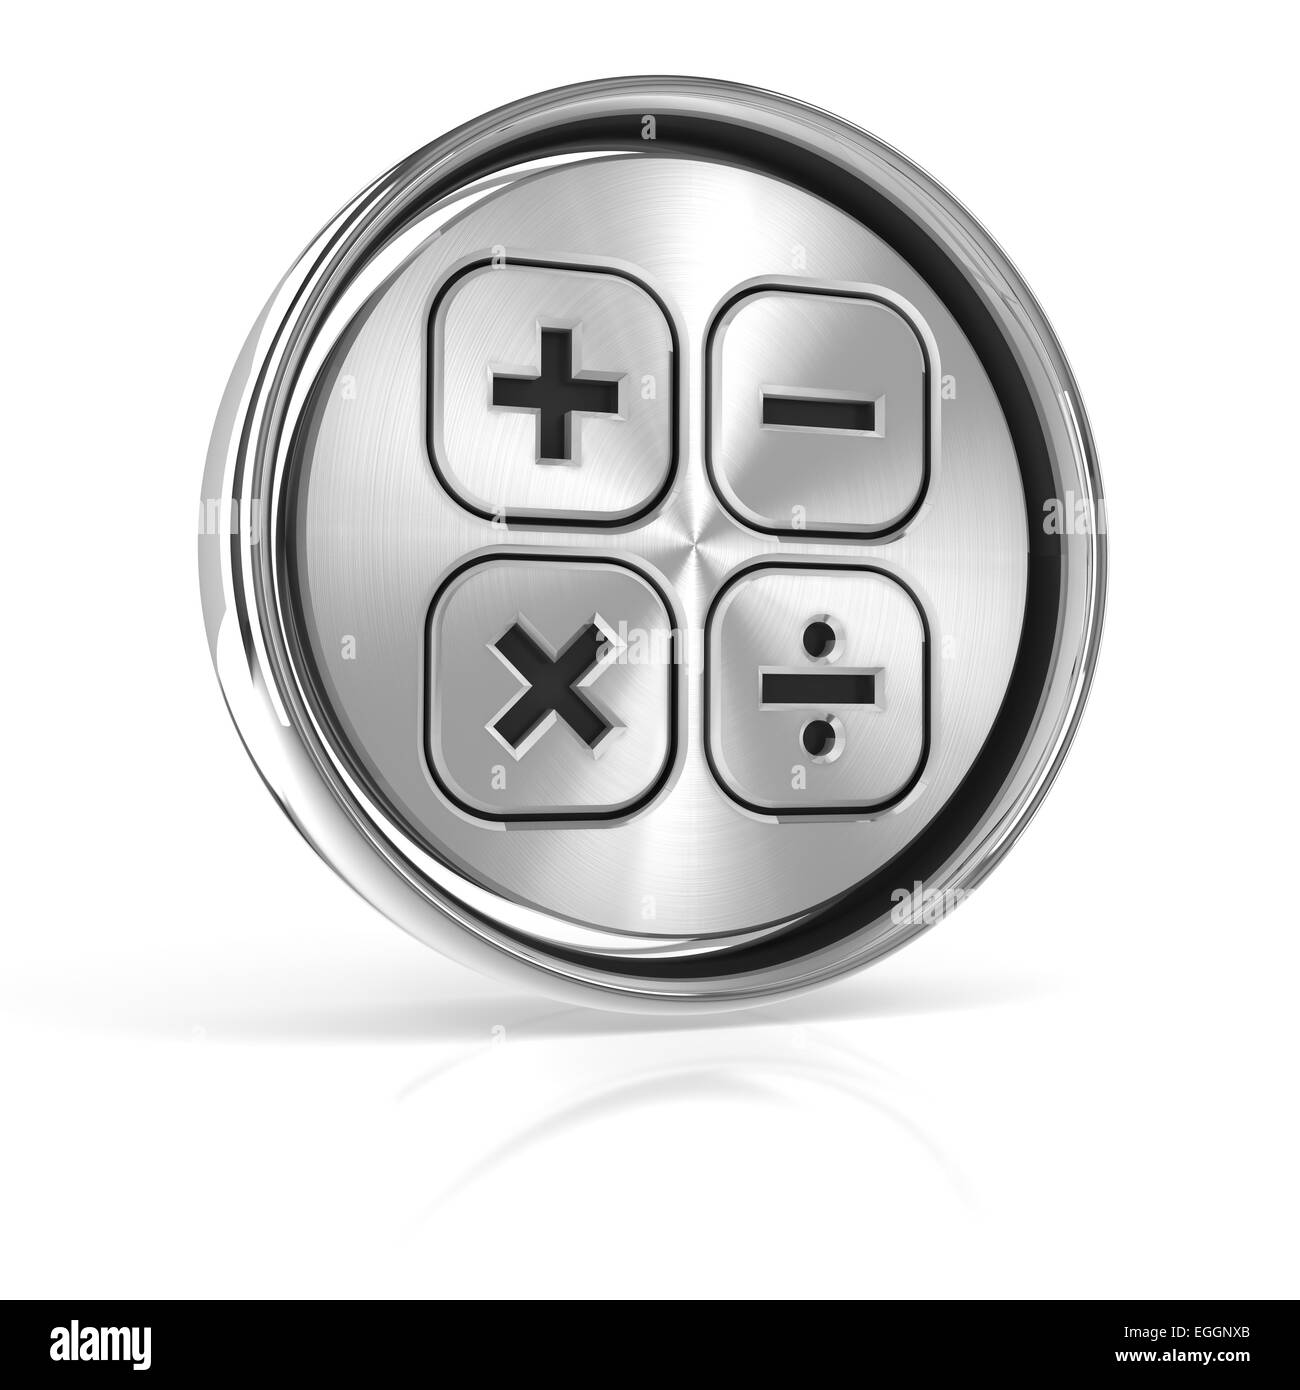 Button with calculation sign - Stock Image